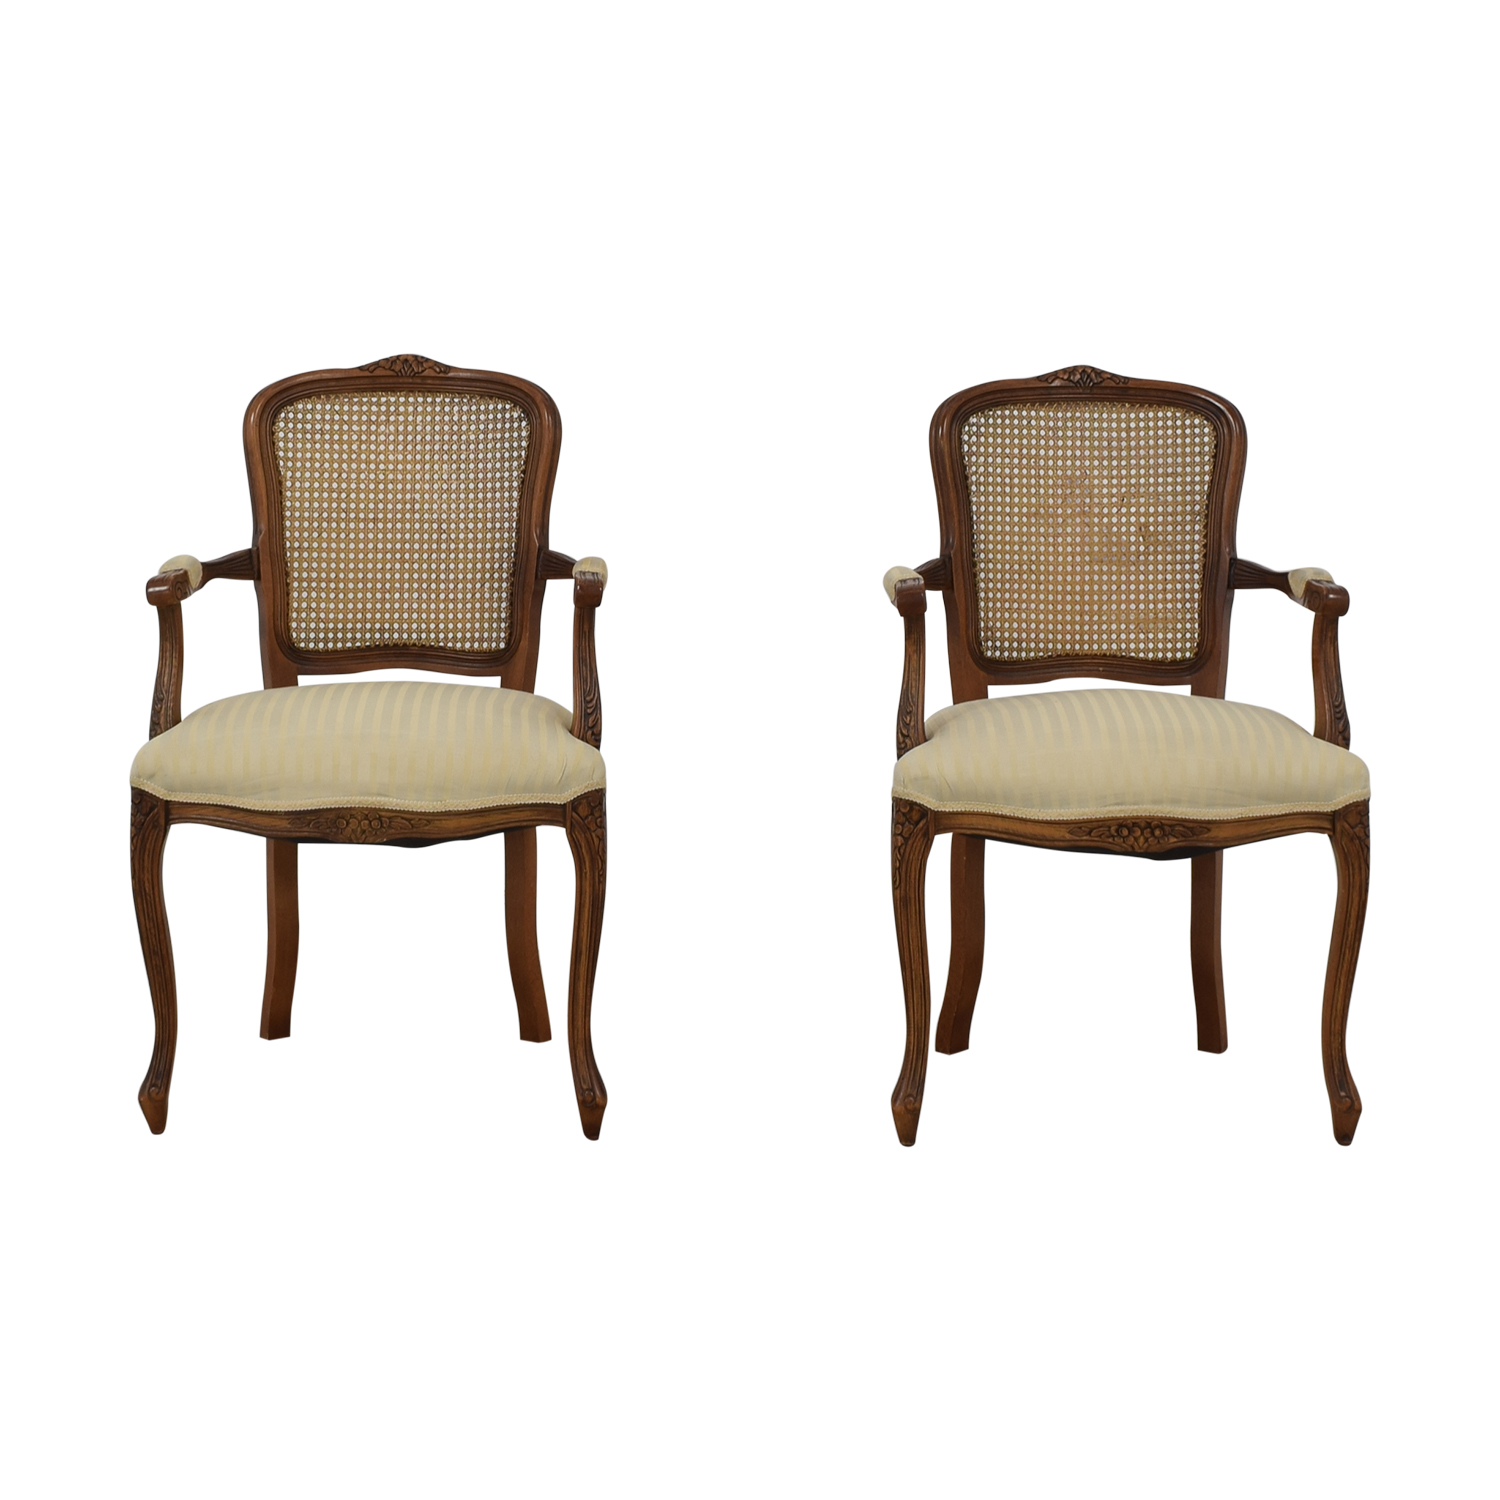 Italian Cane Back Fabric Armchairs / Chairs